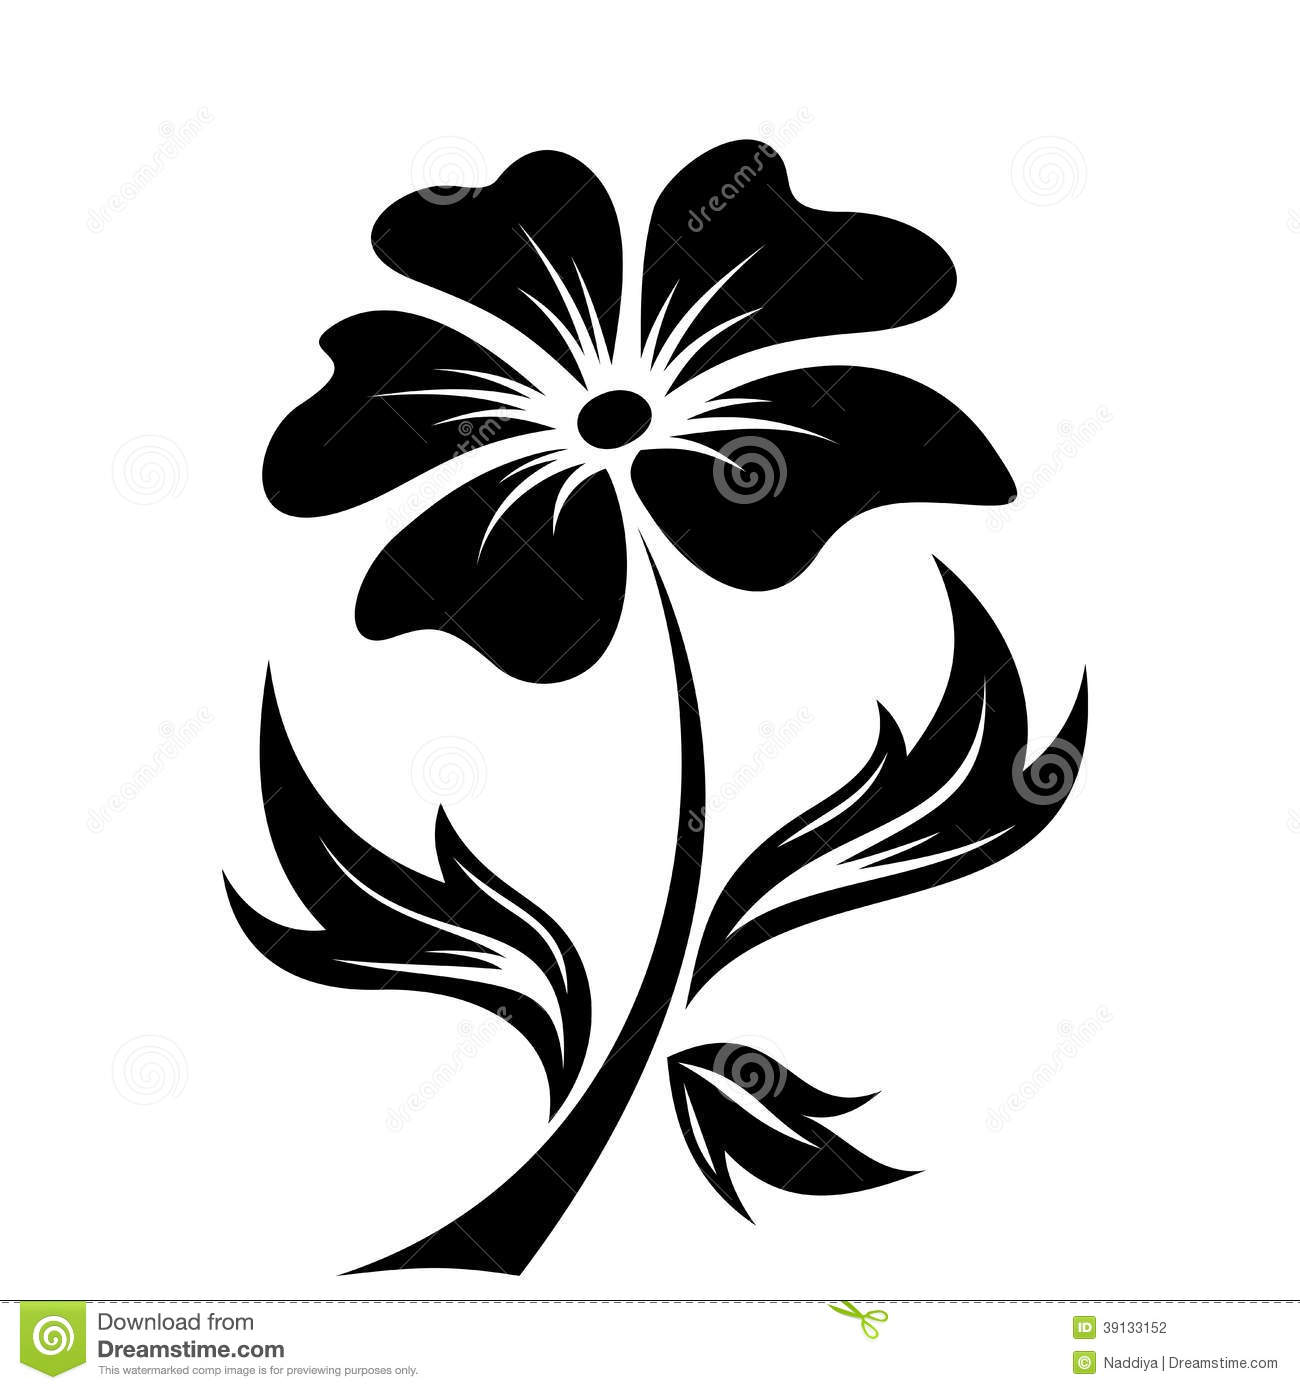 Black Silhouette Flower Vector Illustration Stock Vector Image